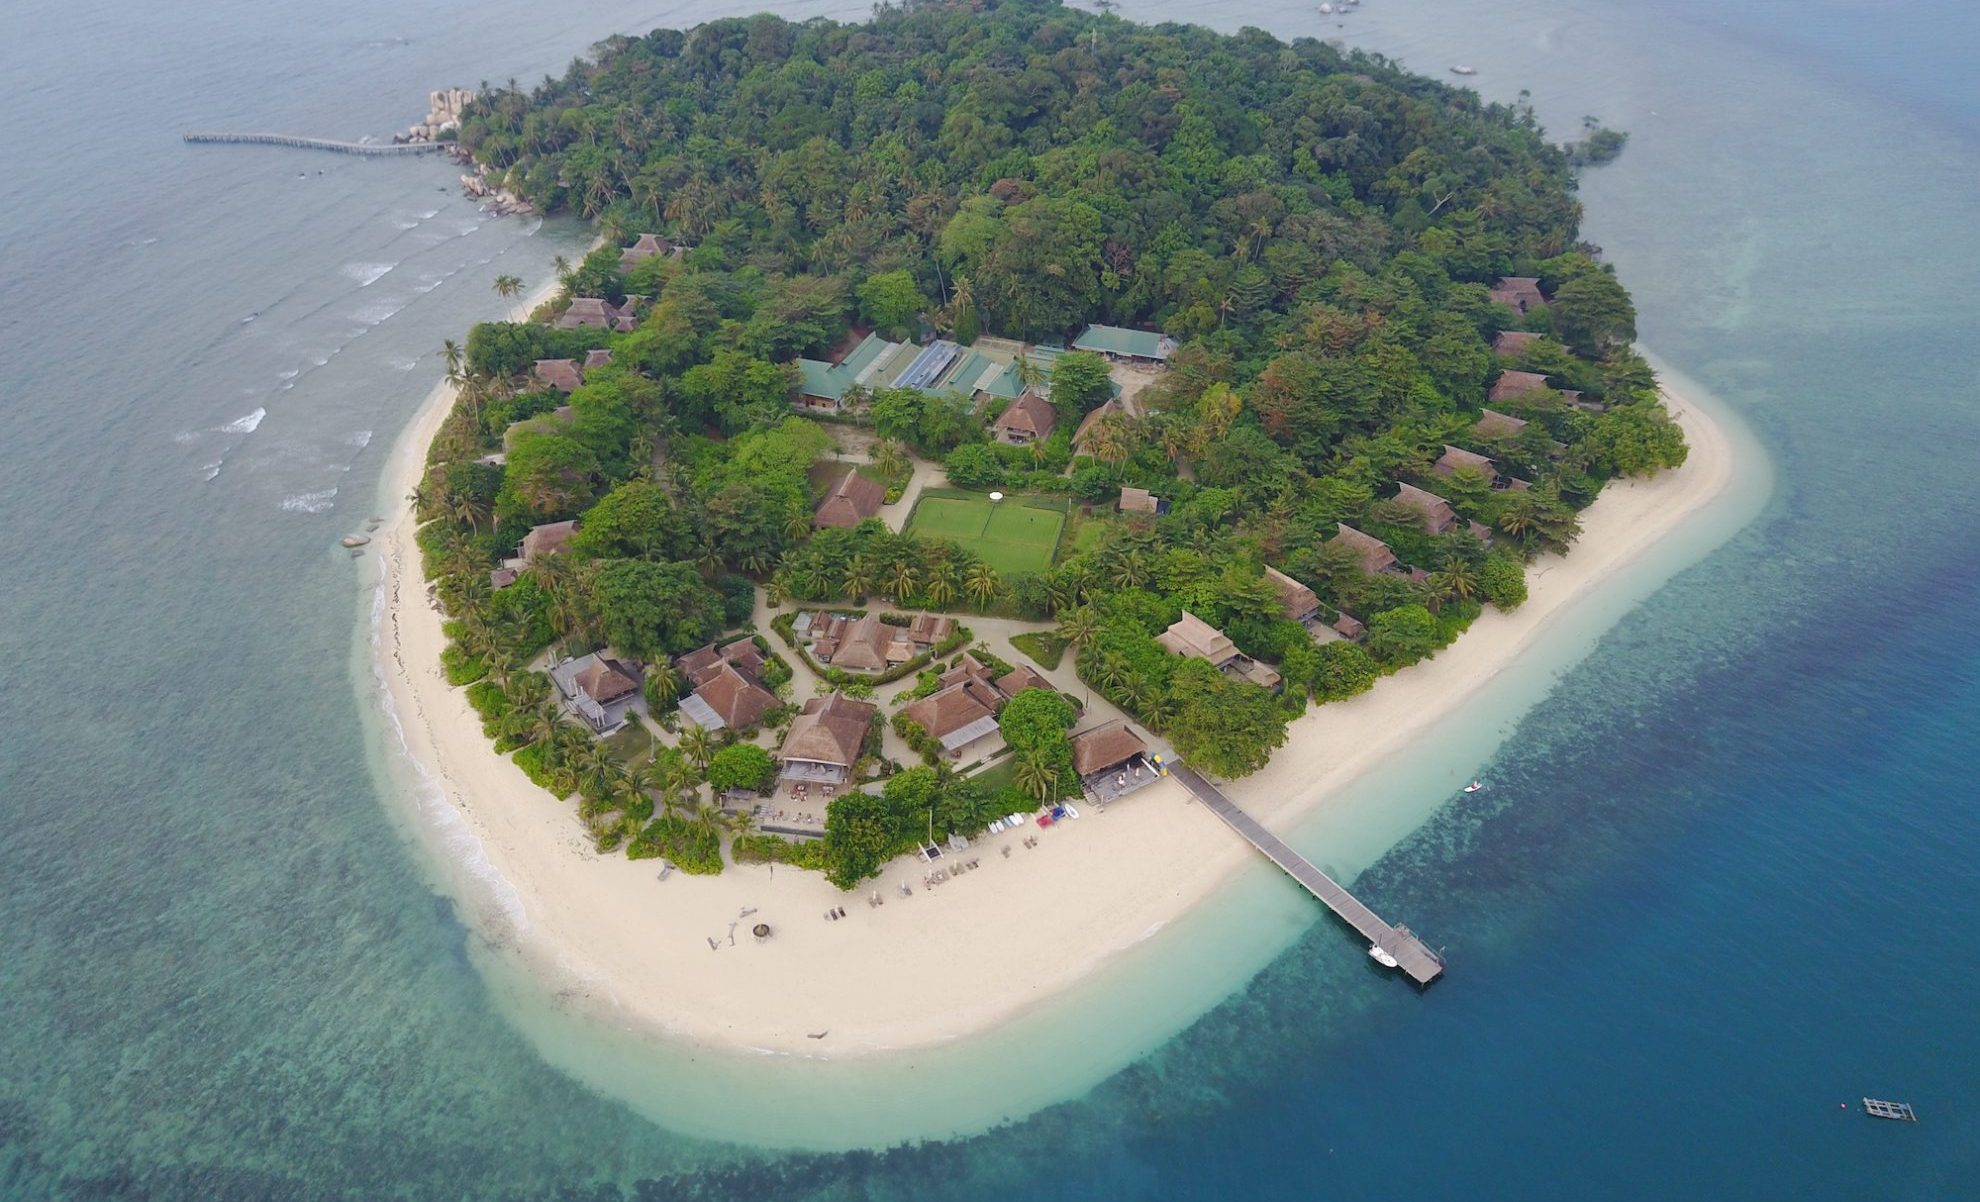 Nikoi Island is one of the 14 nominees for the World Responsible Tourism Award by WTM.